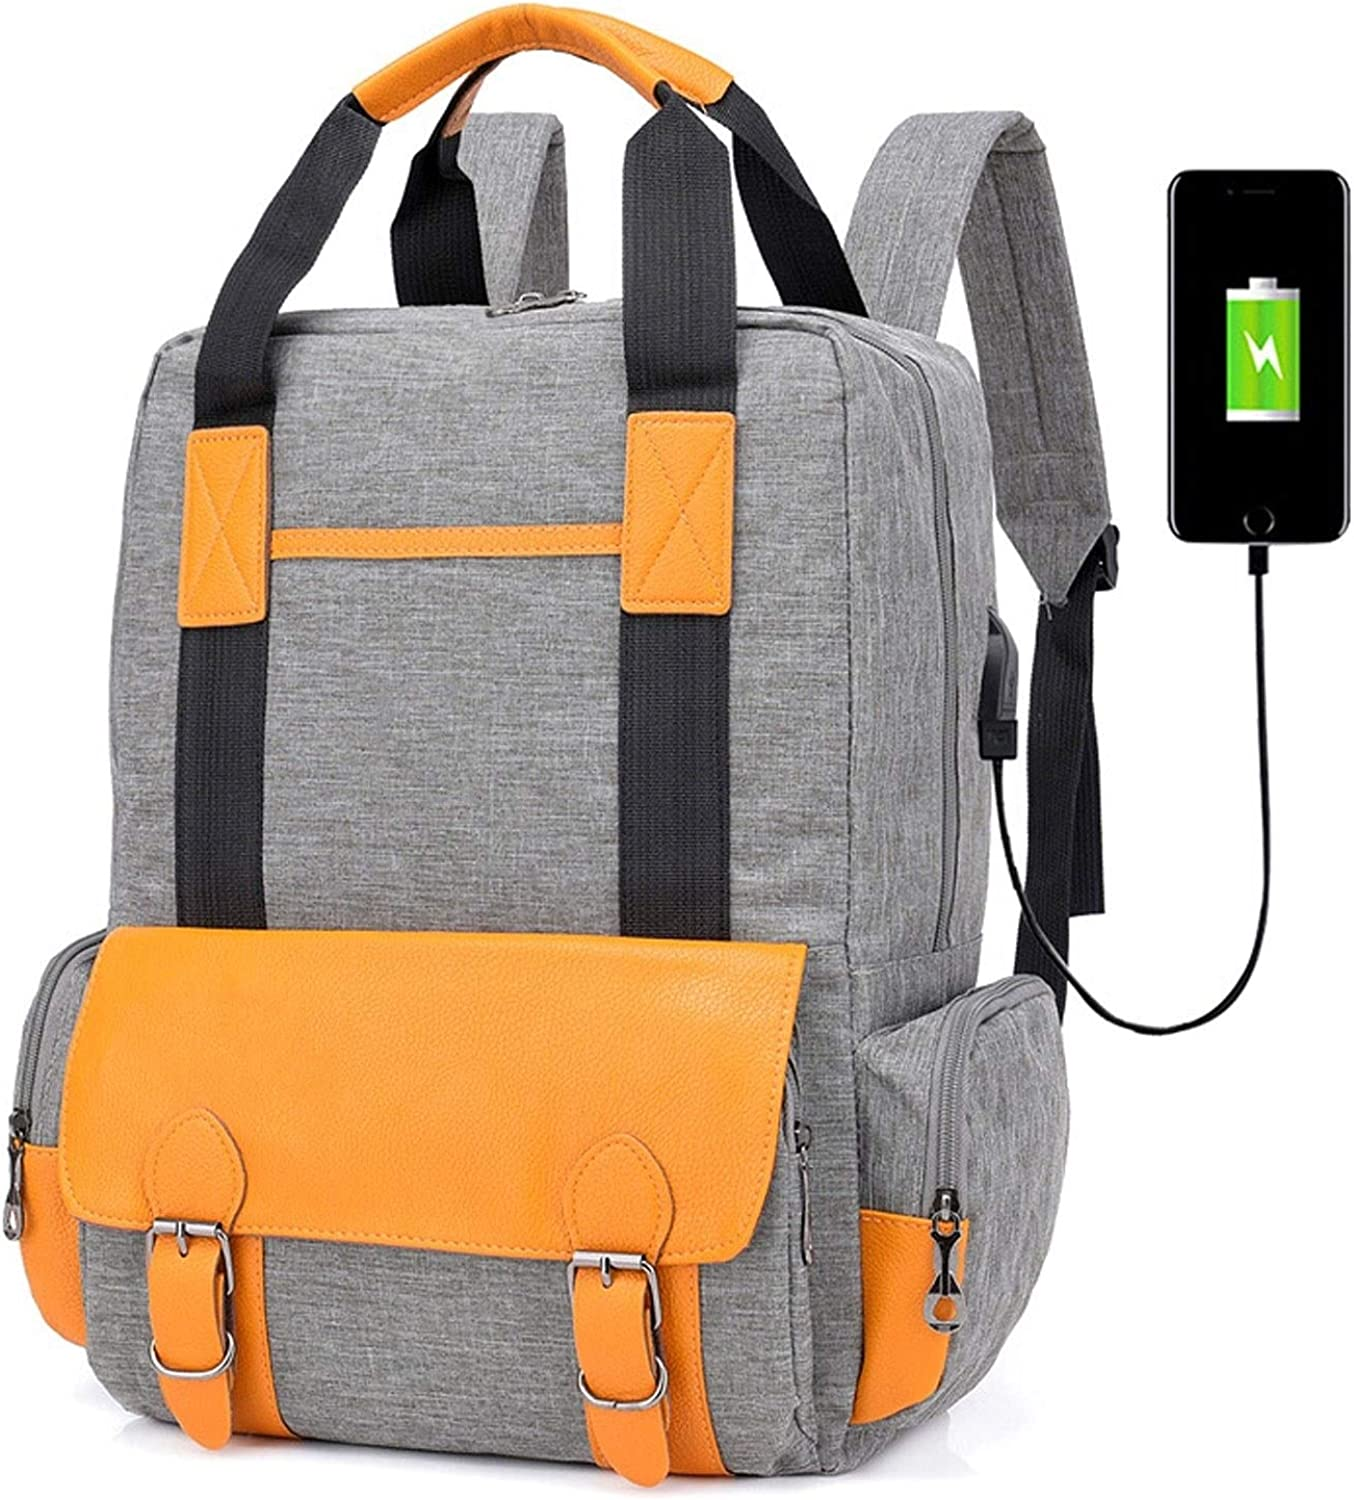 USB Charging Backpack, Outdoor Sports Bag Large Capacity Oxford Cloth Bag Travel Bag Men and Women Waterproof Student Bag Leisure Travel Backpack